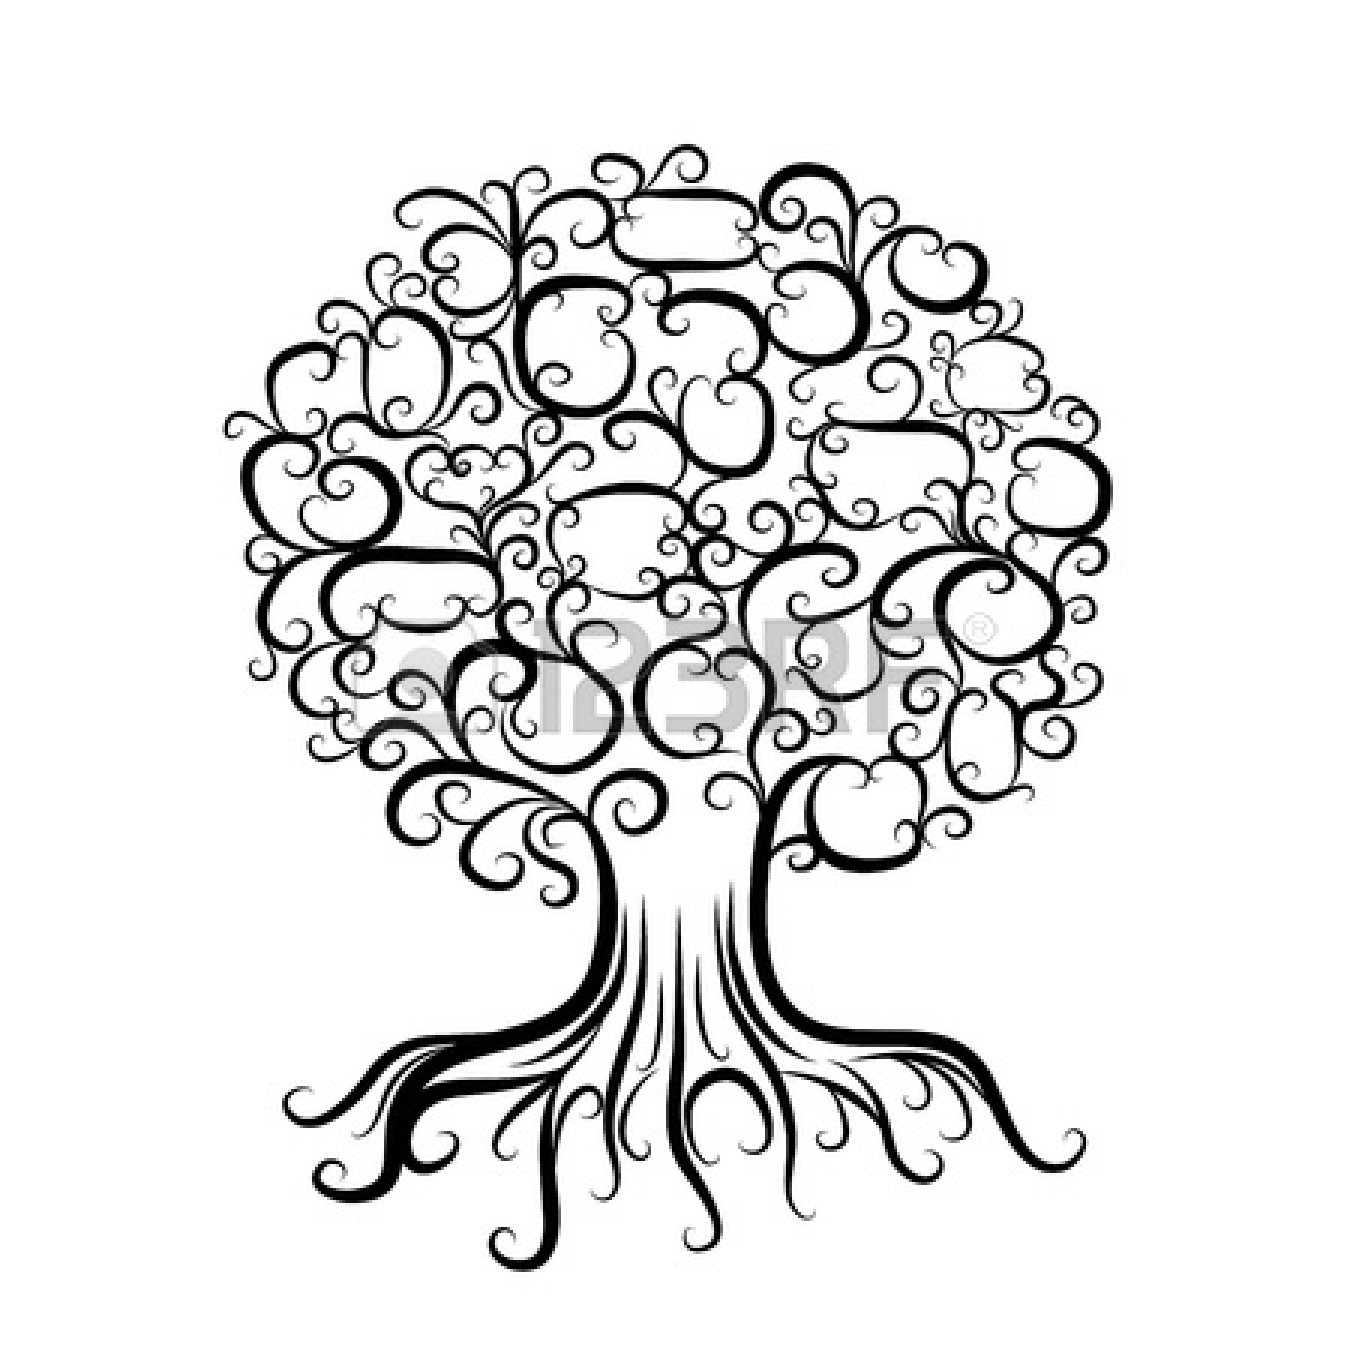 Tree Roots Silhouette Clip Art